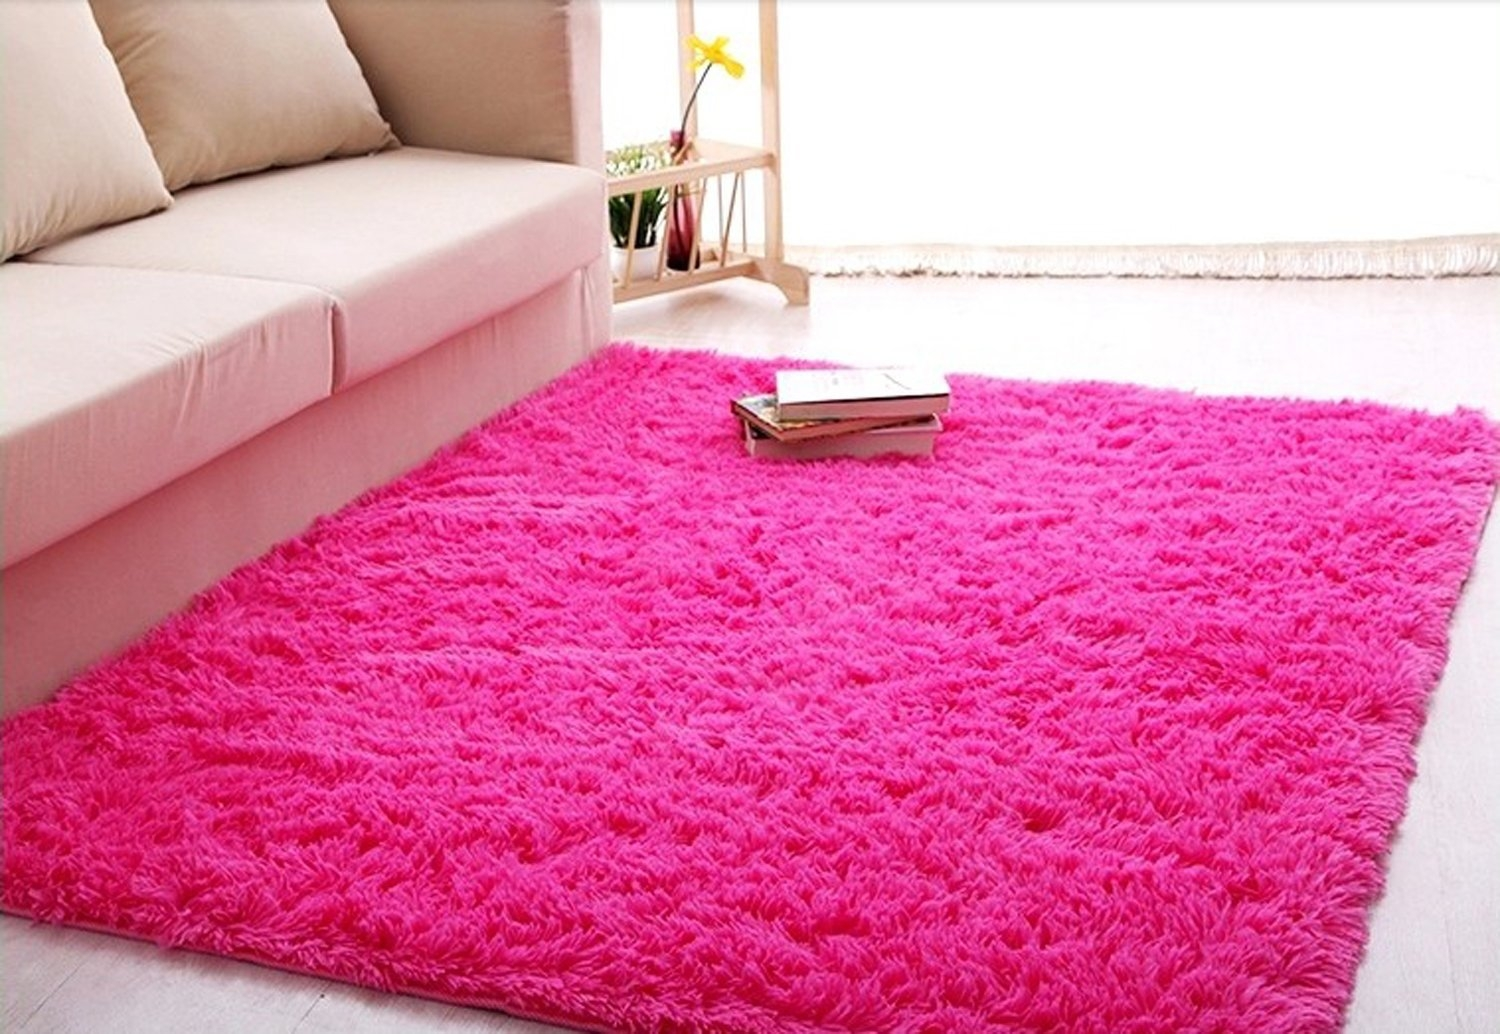 Cheap Pink Rug Roselawnlutheran Pertaining To Pink Alphabet Rugs (Image 4 of 15)